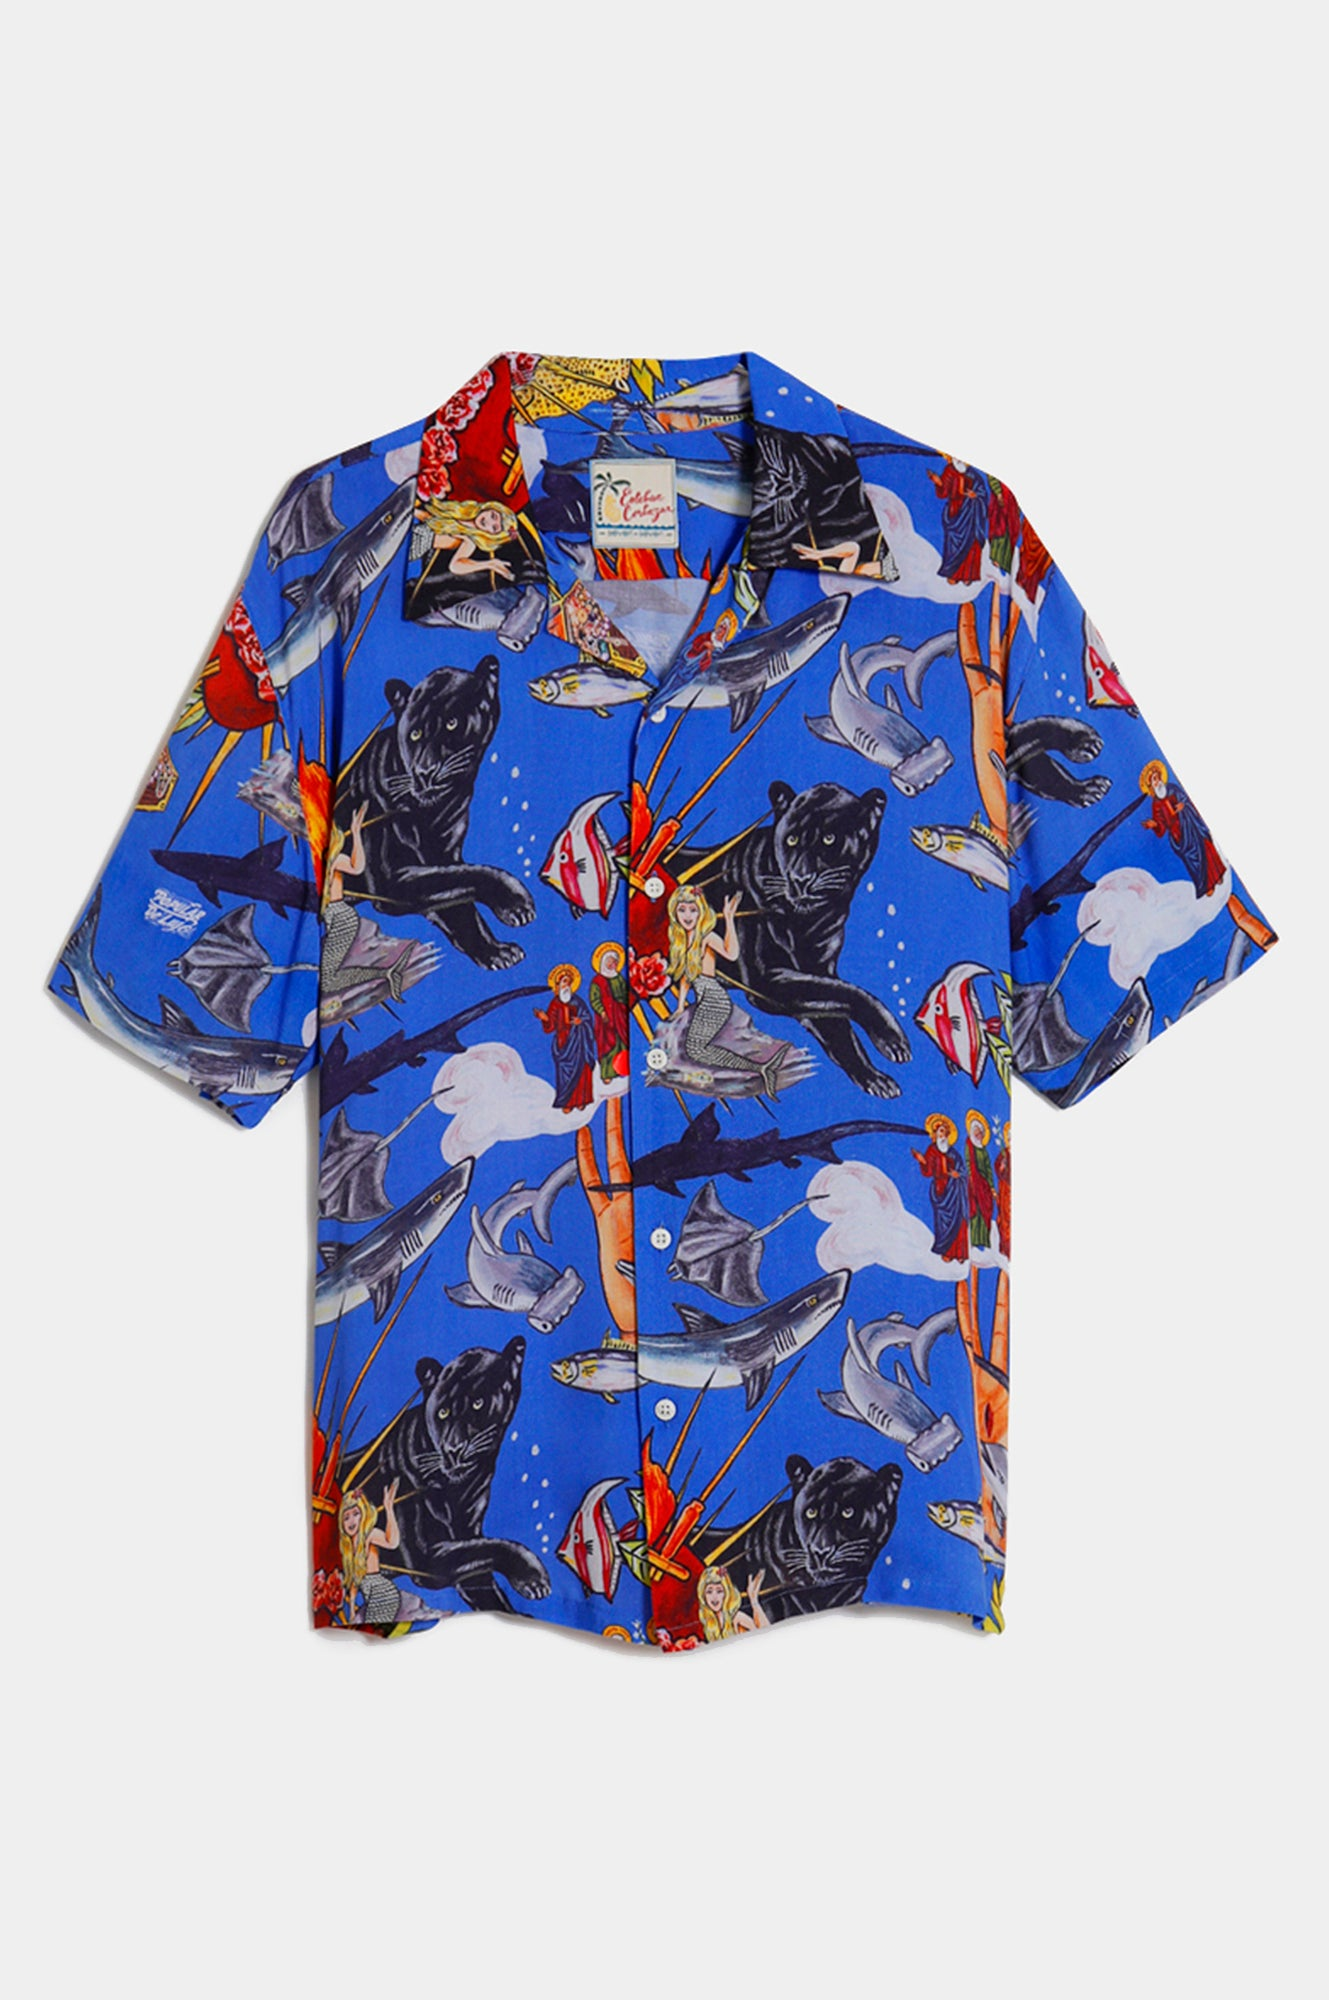 POPULAR DE LUJO PRINT SHORT SLEEVE SHIRT - Esteban Cortazar